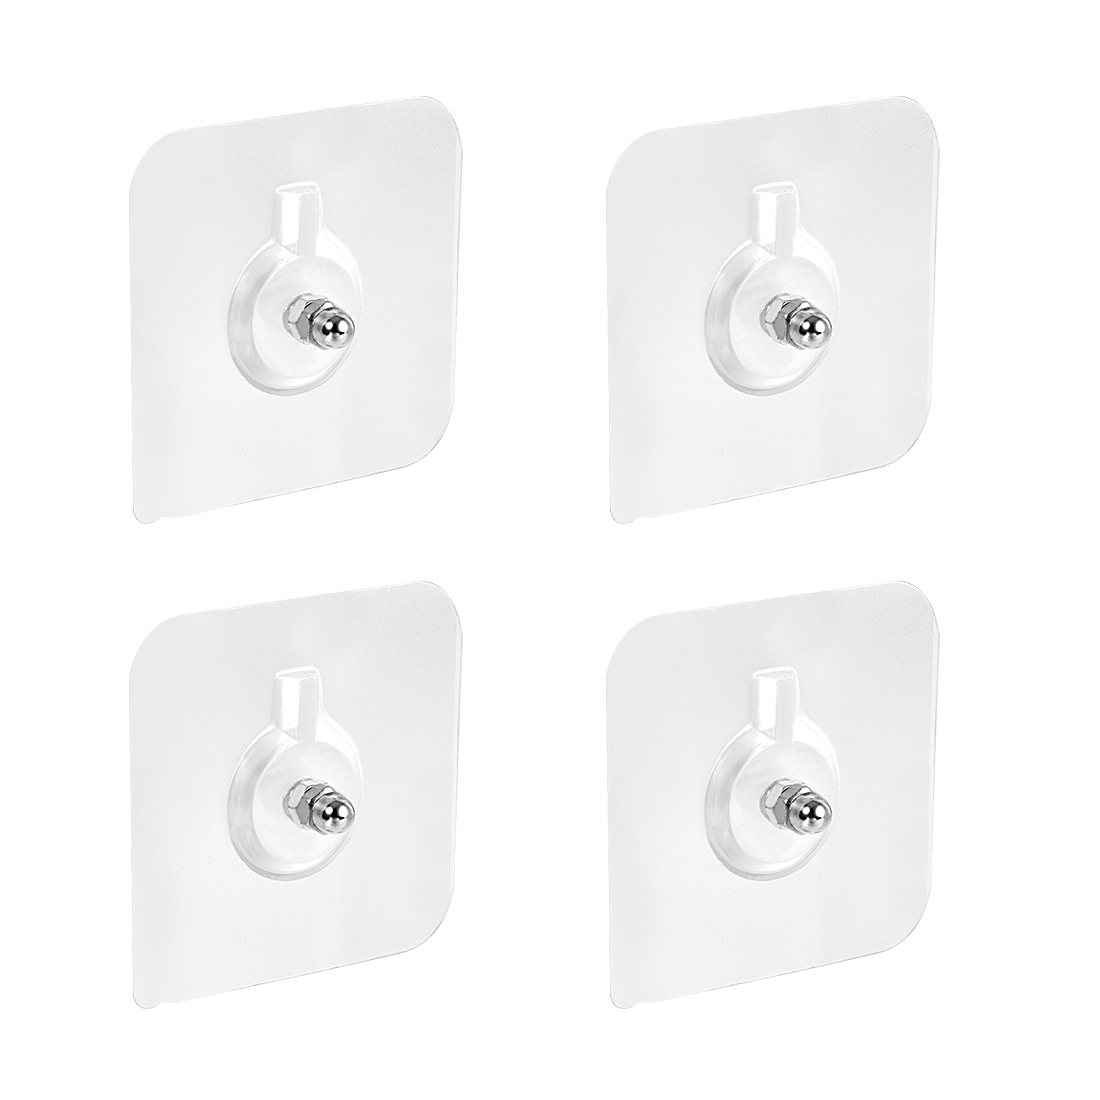 Wall Hooks Self Adhesive Hooks 6mm Thread 60mmx60mm Waterproof PVC Clear 4pcs